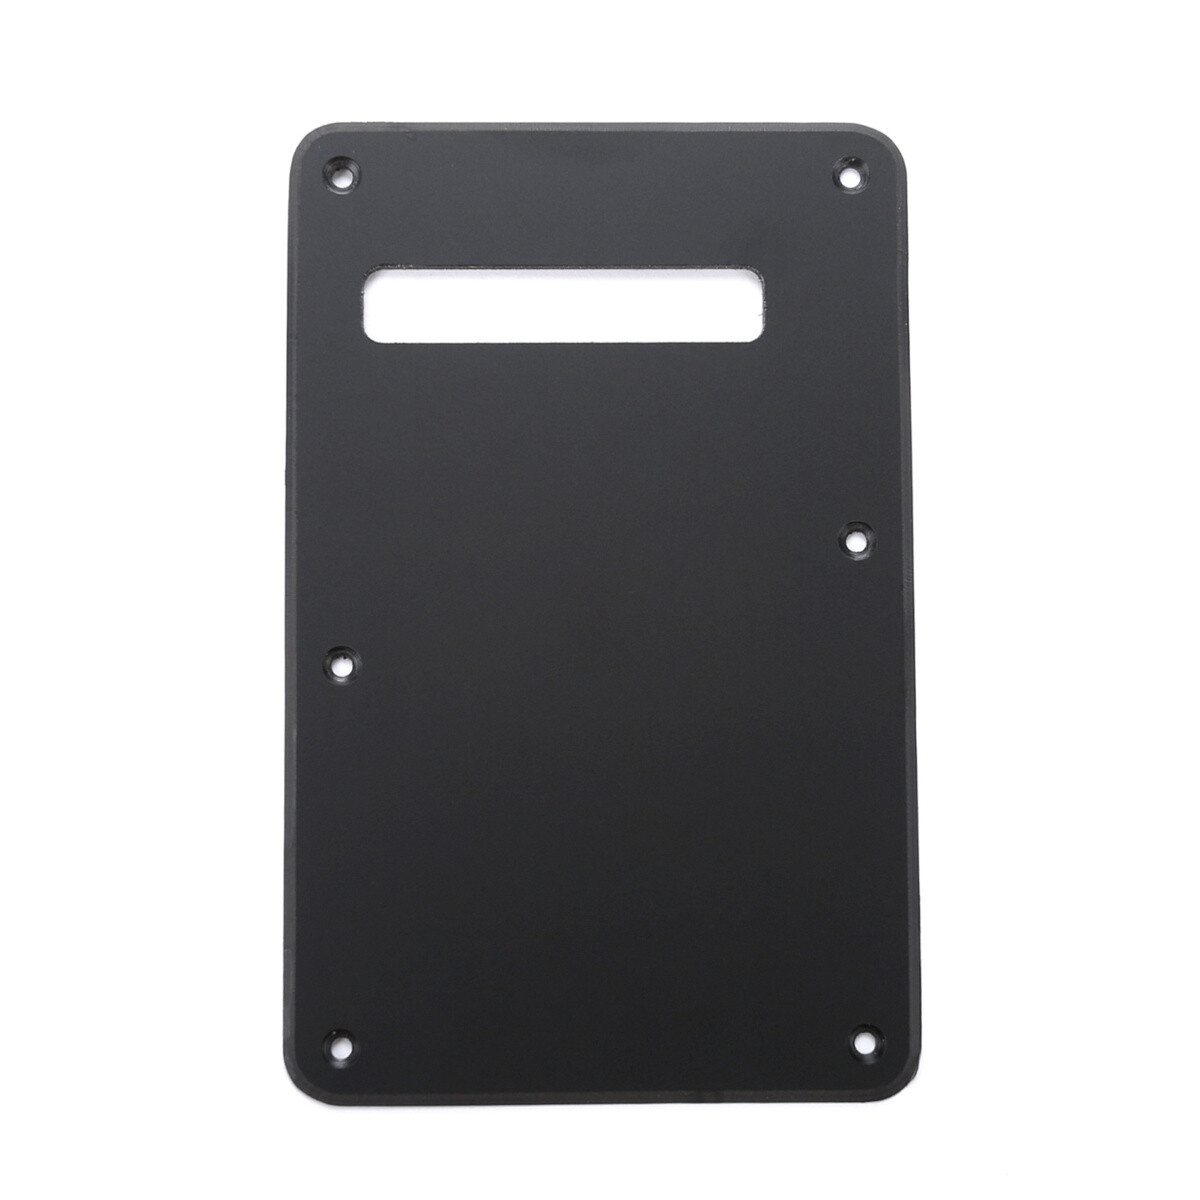 Brio Matte Black Modern Style Back Plate Tremolo Cover 1 ply - US/Mexican Fender®Strat® Fit